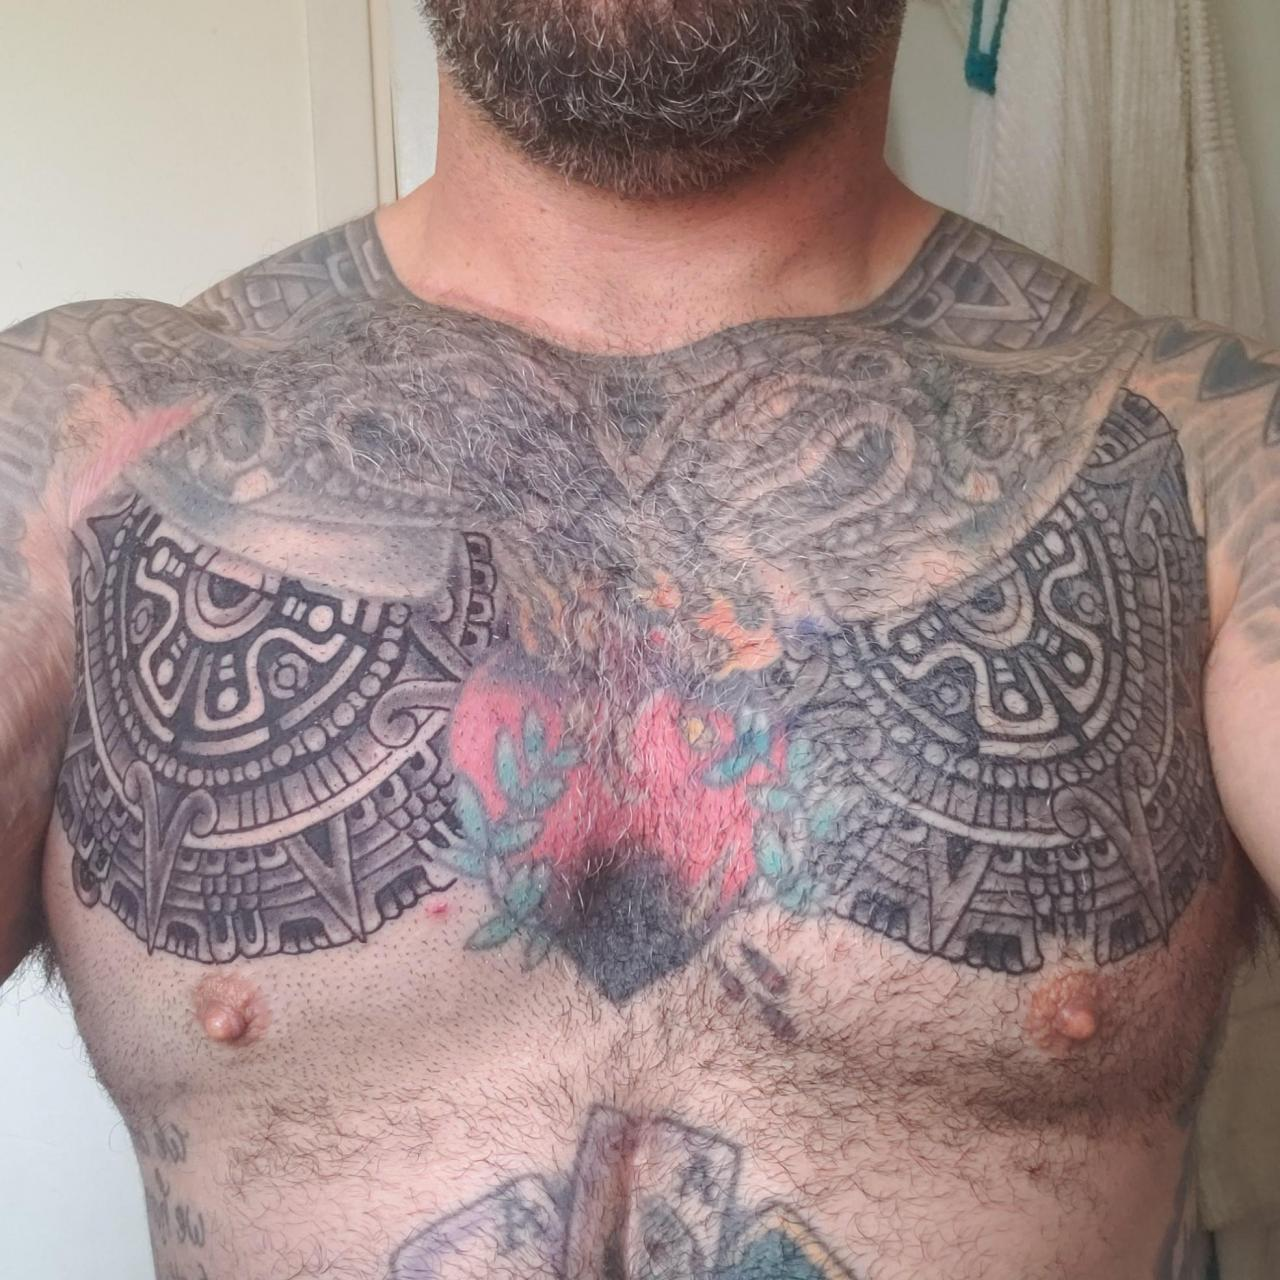 Chest plate complete. Work on connecting it to the shoulder is next. Port City Tattoo, Long Beach CA. My homie Tom of 20+ years is the owner and my tattoo artist. Blasting pretty much everything on me.